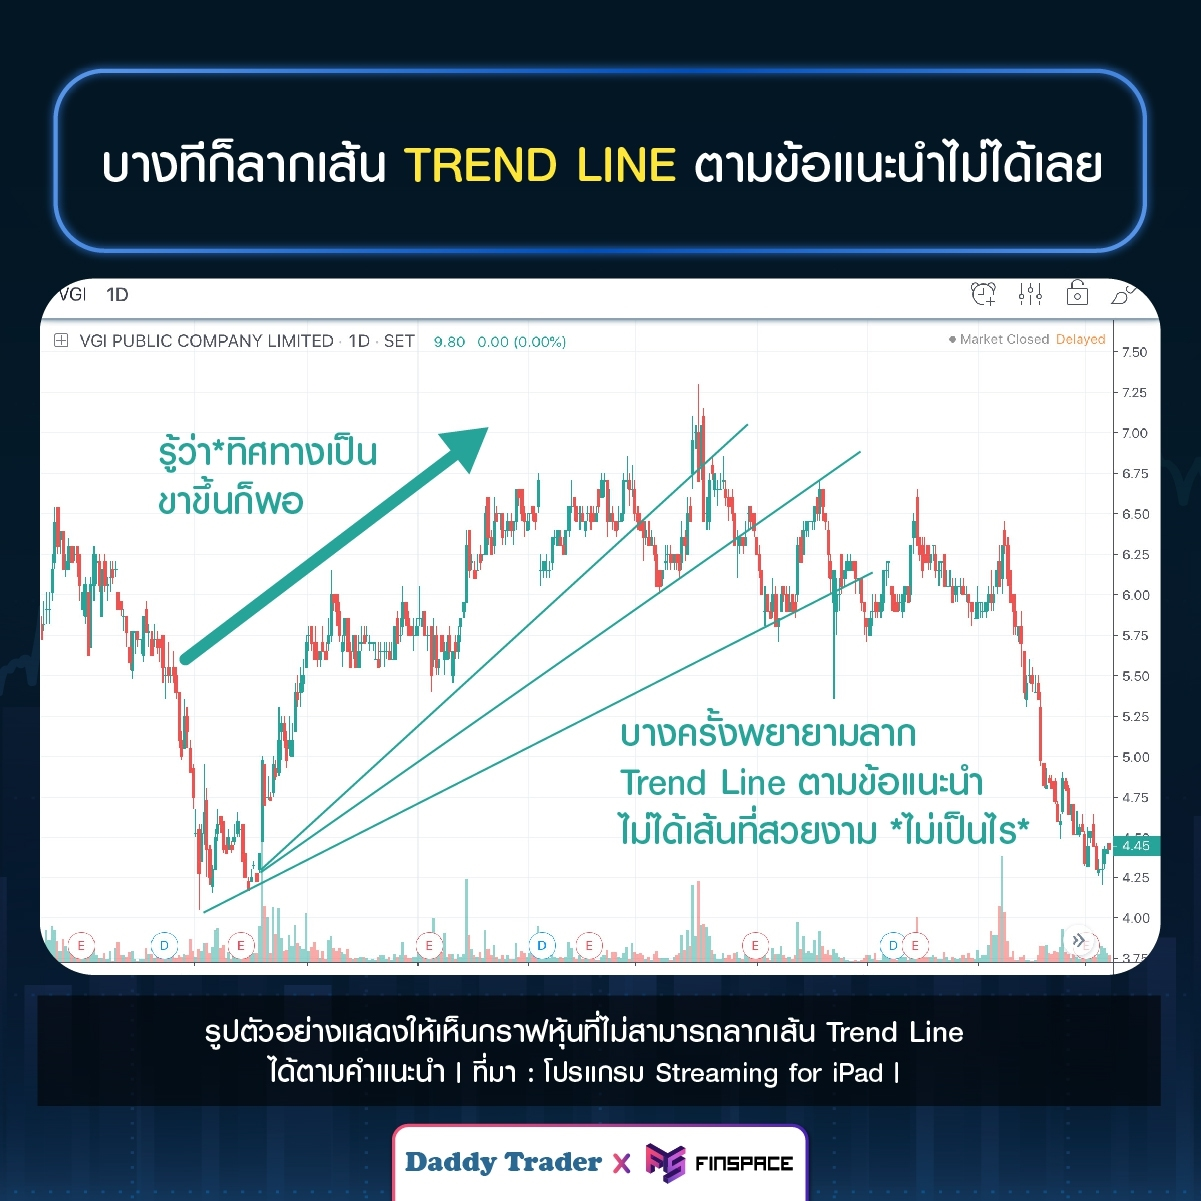 Can't drag Trend line